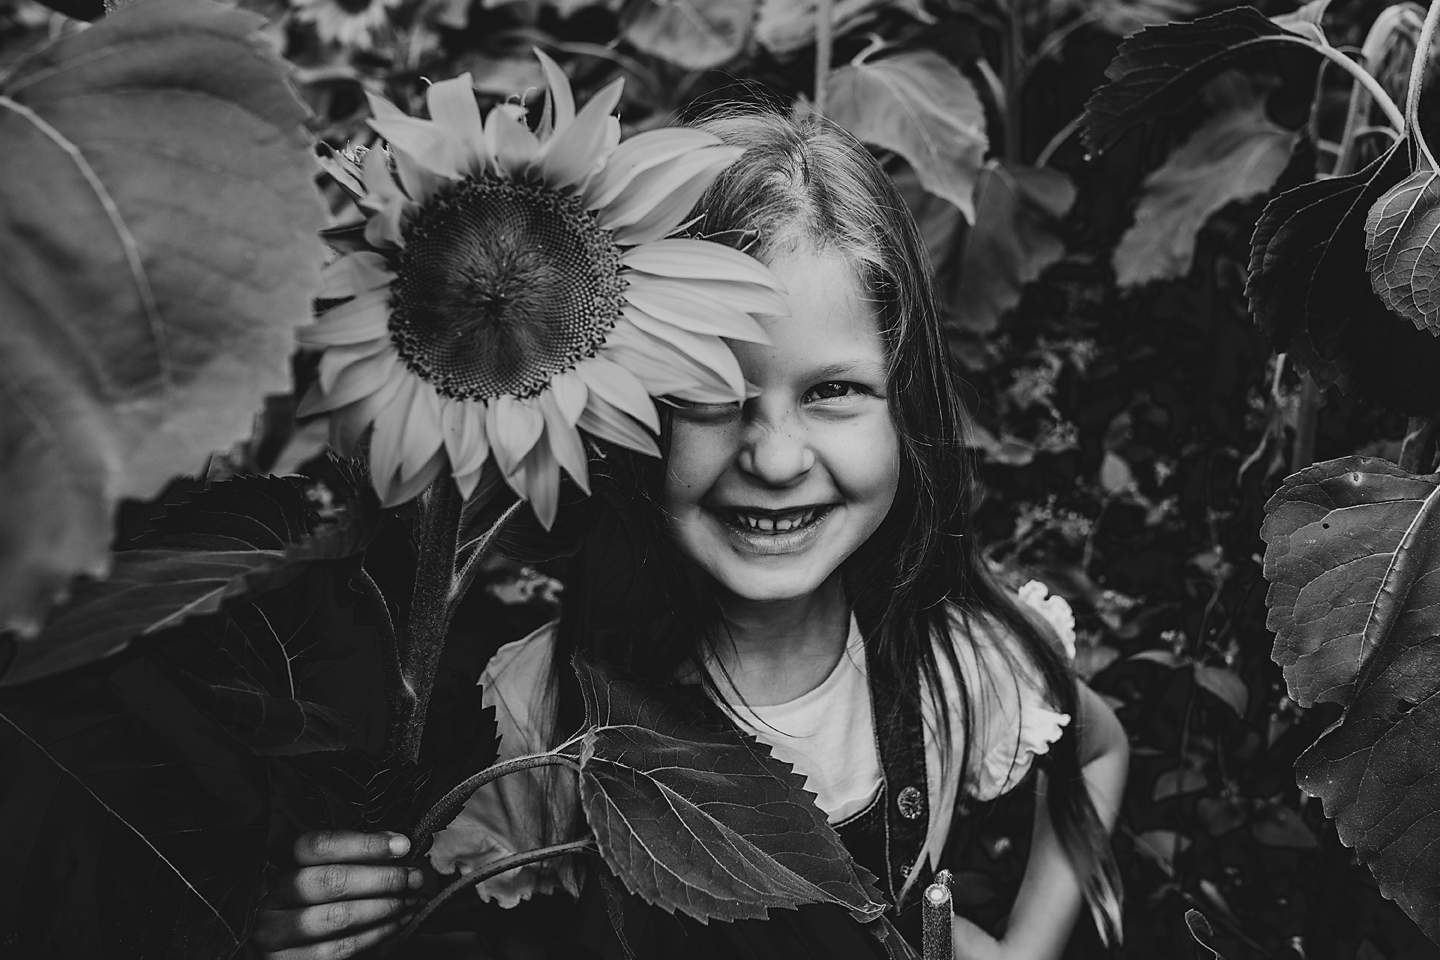 dartmouth photographer, north devon, south devon, portrait, sunflowers, beach, relaxed, natural, family, parenthood, stylish, loving, embracing, thoughtful, with feeling, tog, images, pics (1 (4).jpg